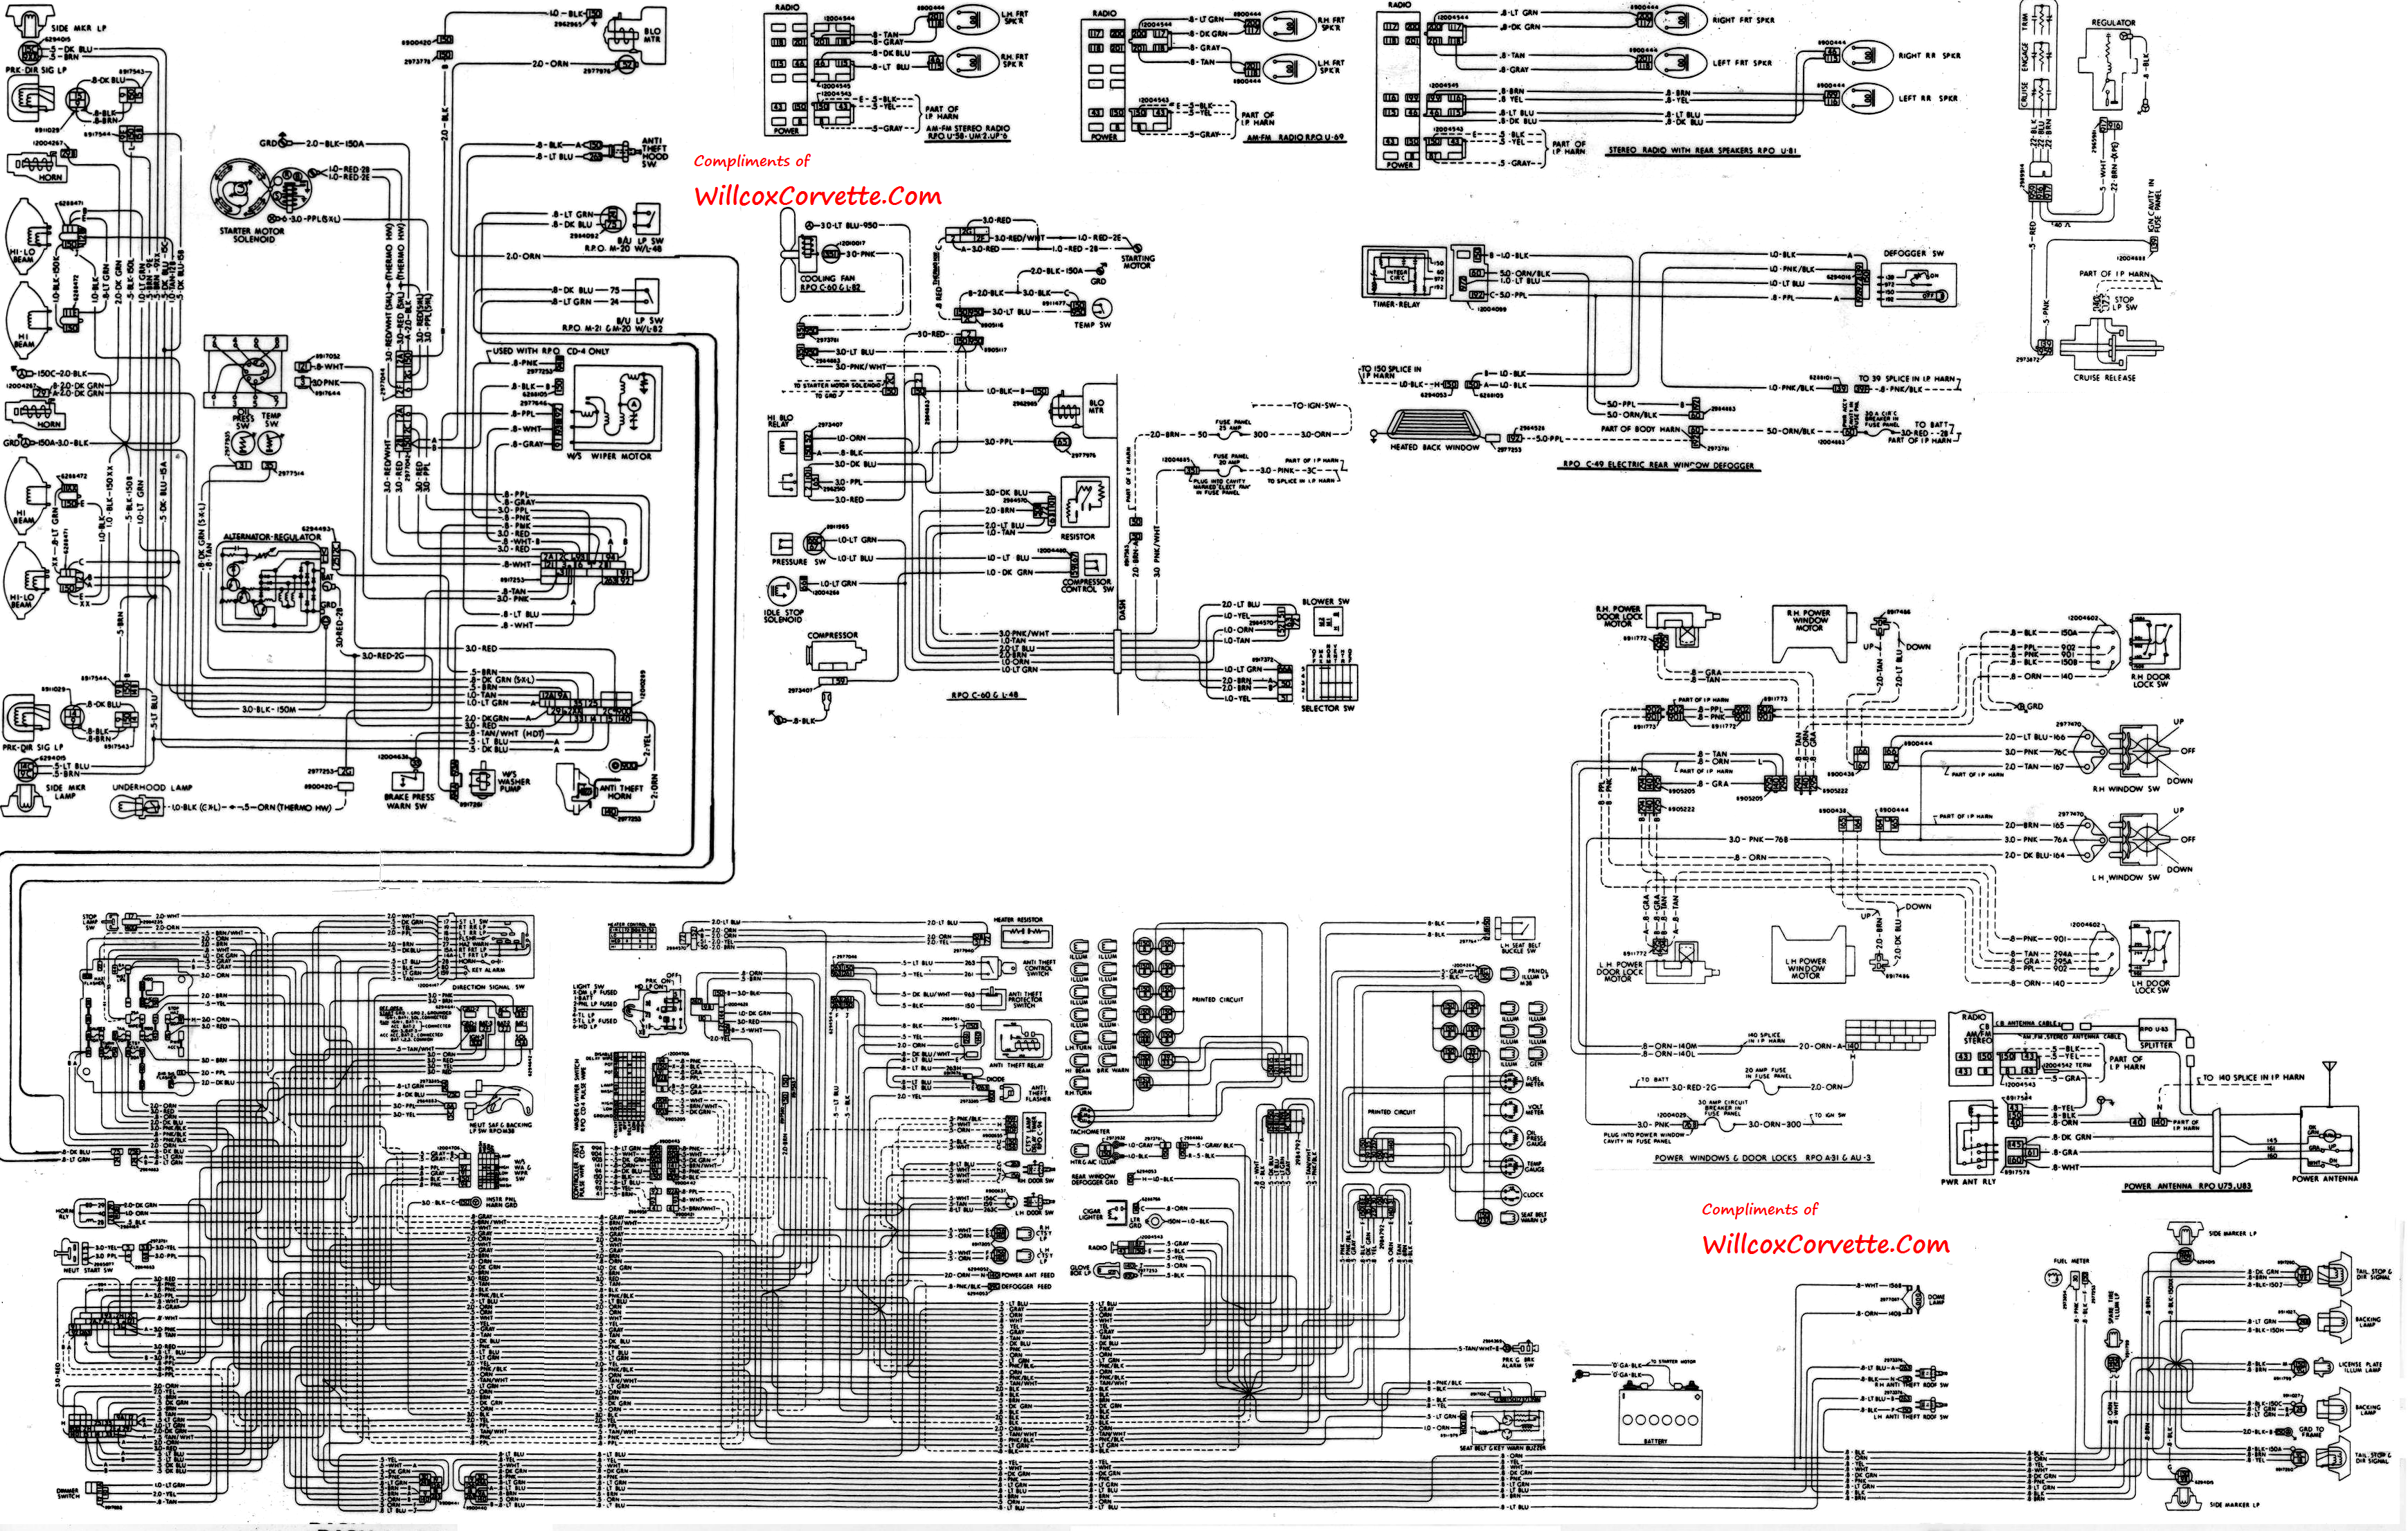 1979 wire diagram 1978 corvette wiring diagram pdf 1980 el camino wiring diagram Schecter Diamond Series Wiring Diagram at nearapp.co